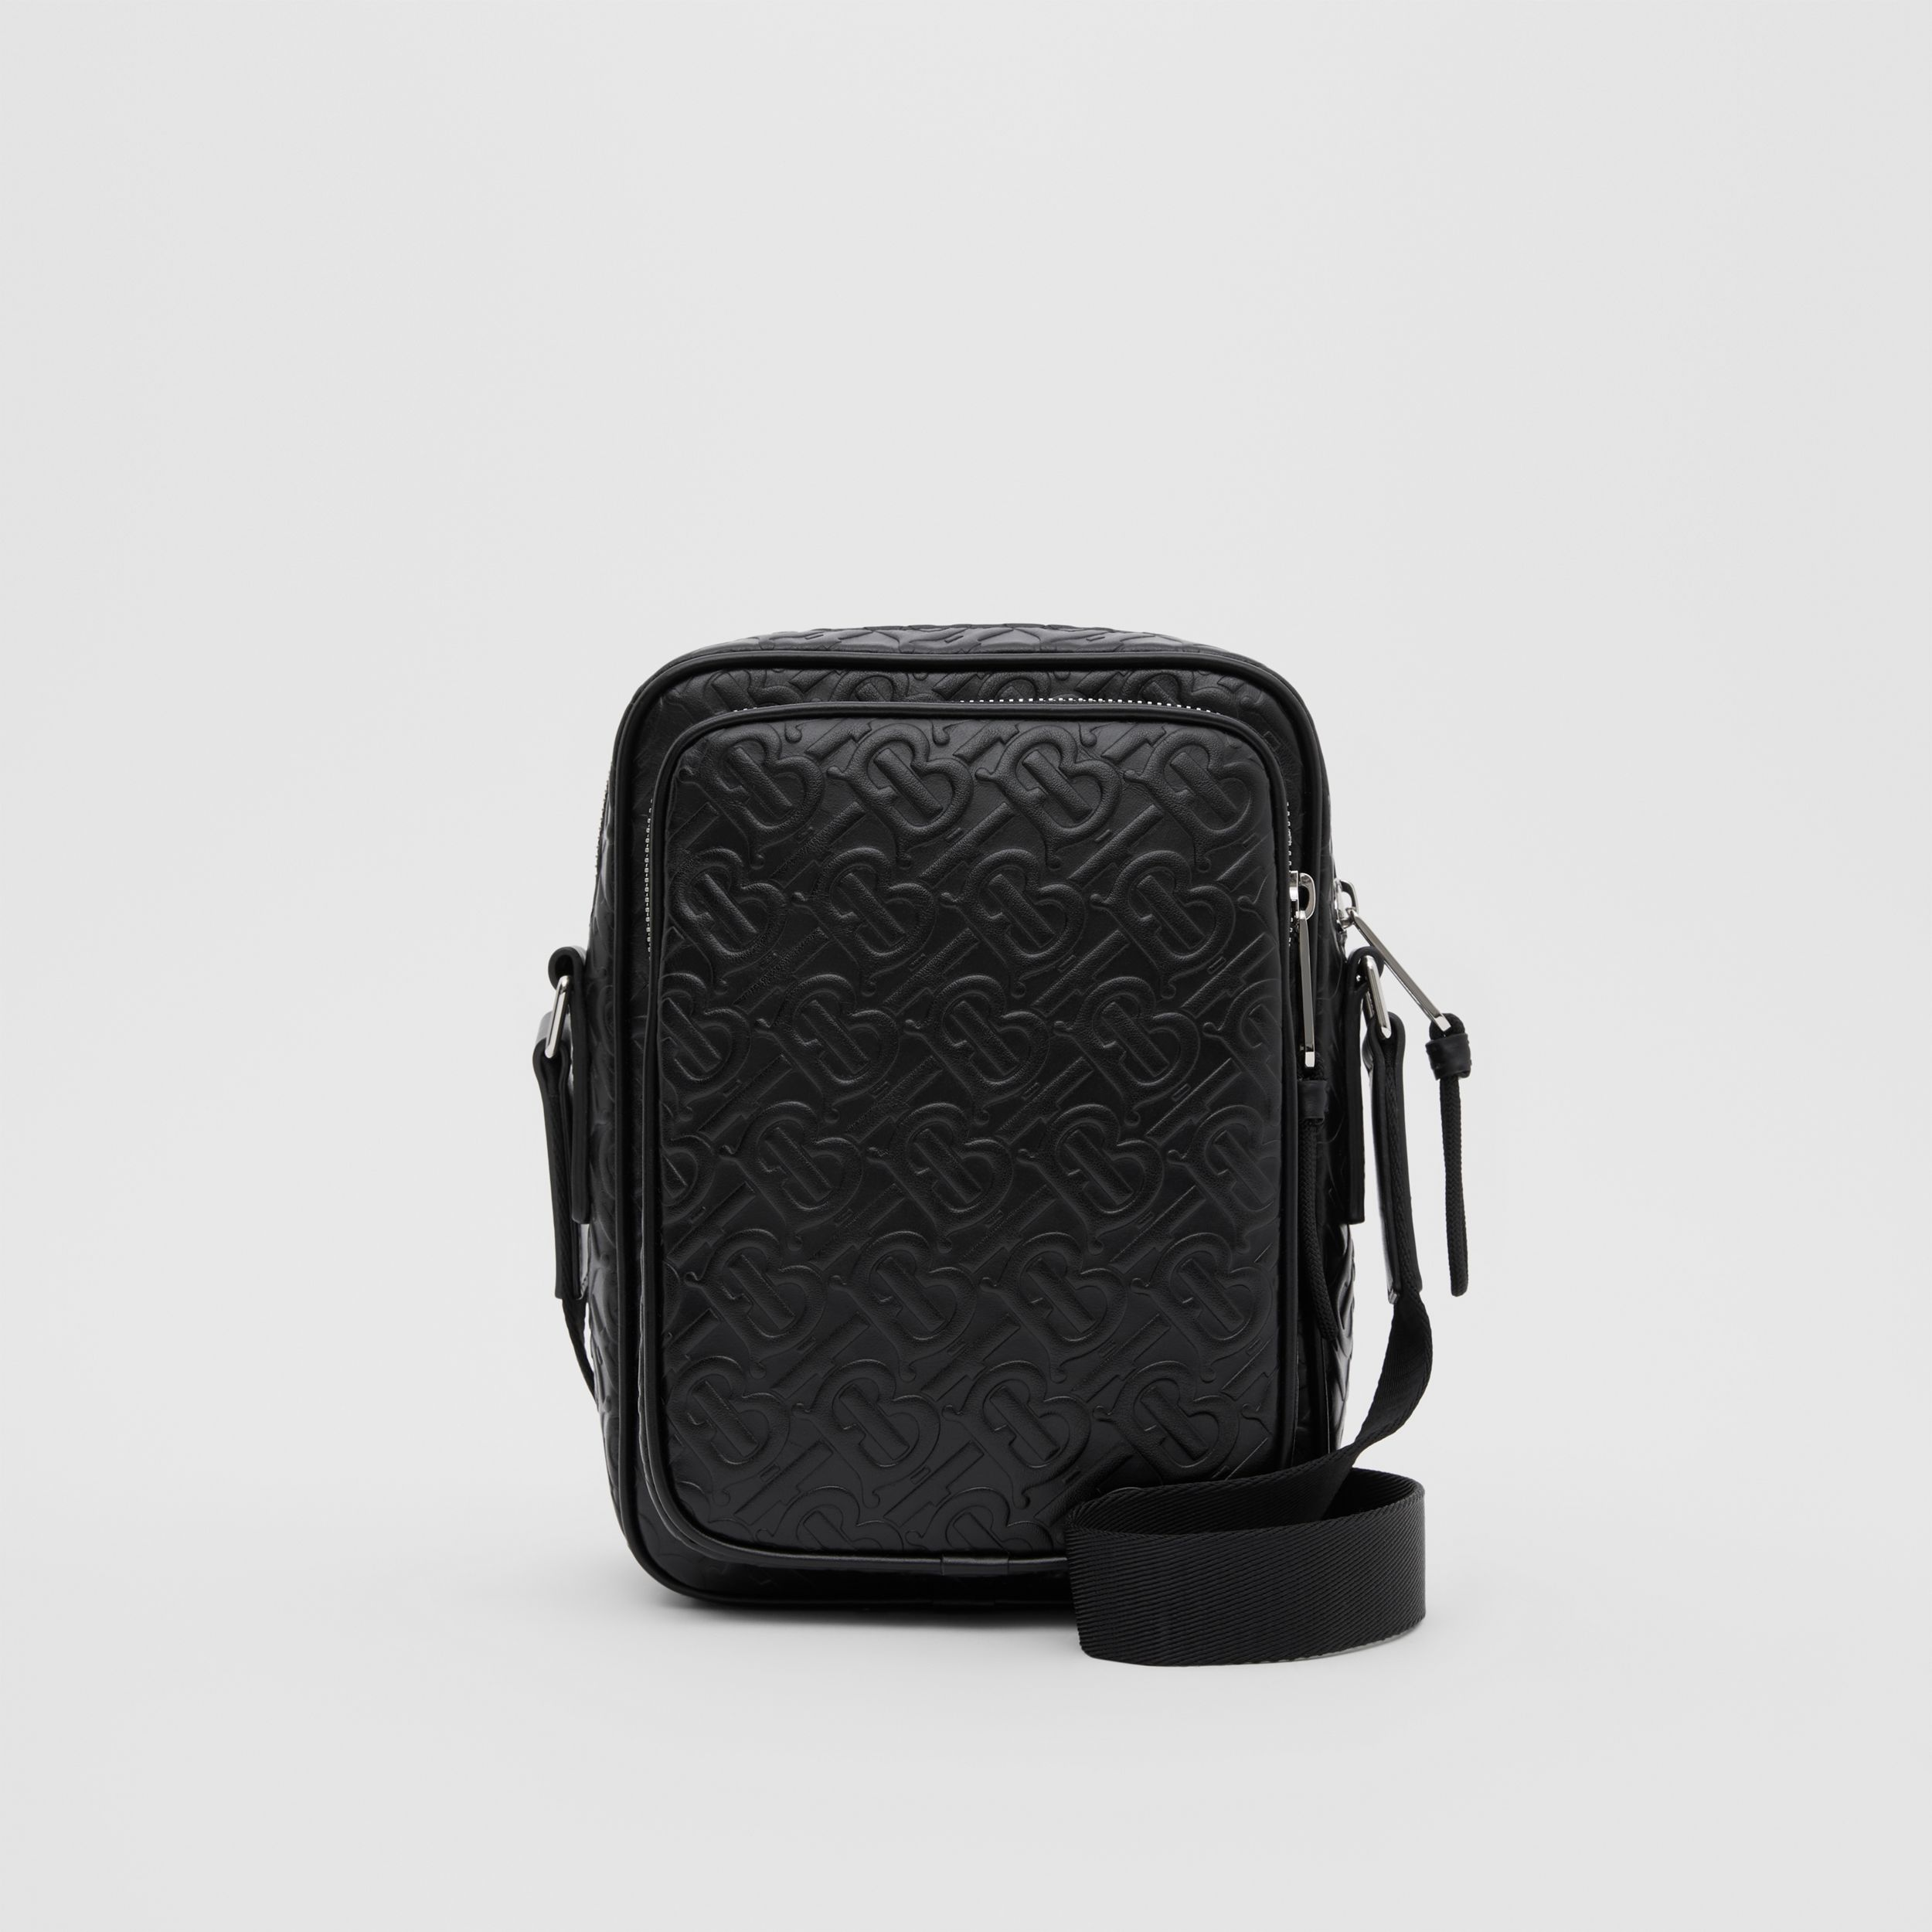 Monogram Leather Crossbody Bag in Black - Men | Burberry - 1